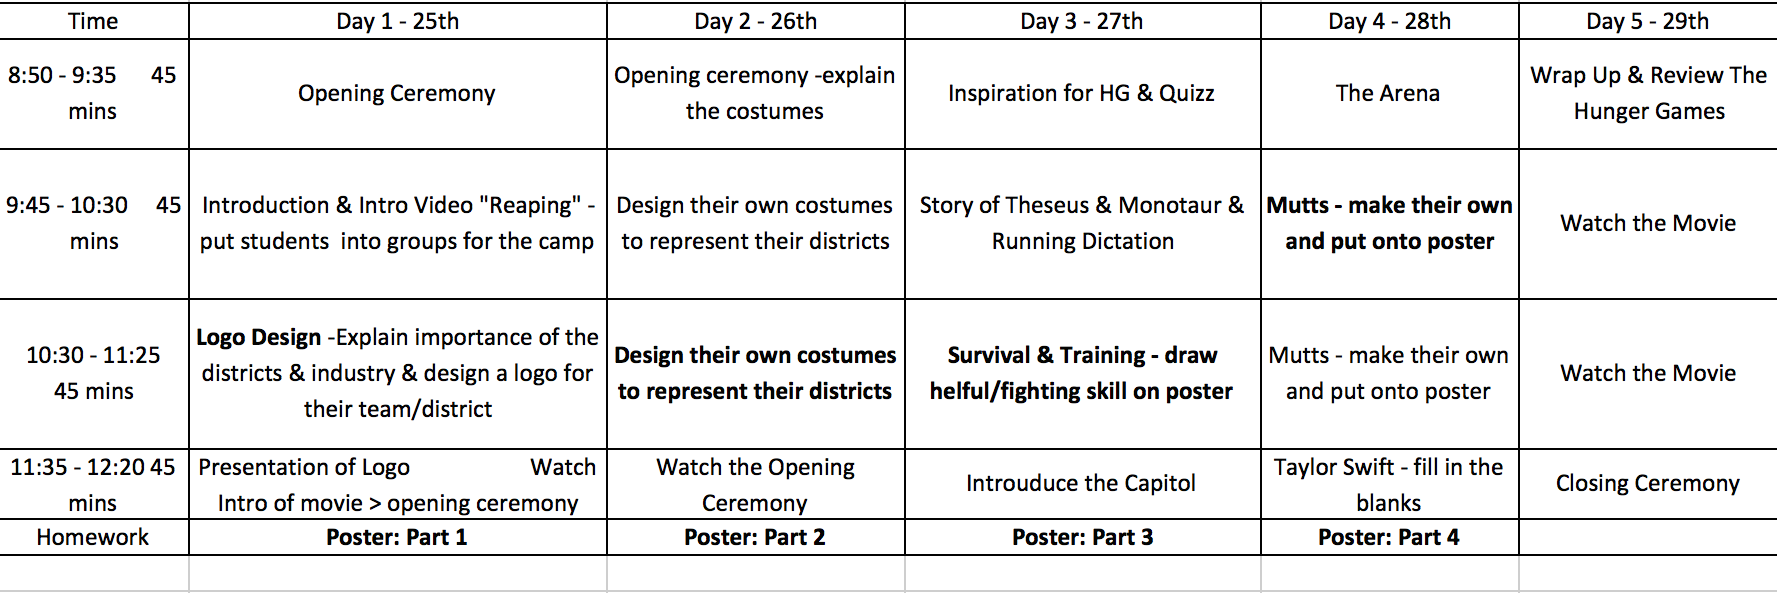 Hunger Games English Camp Plan